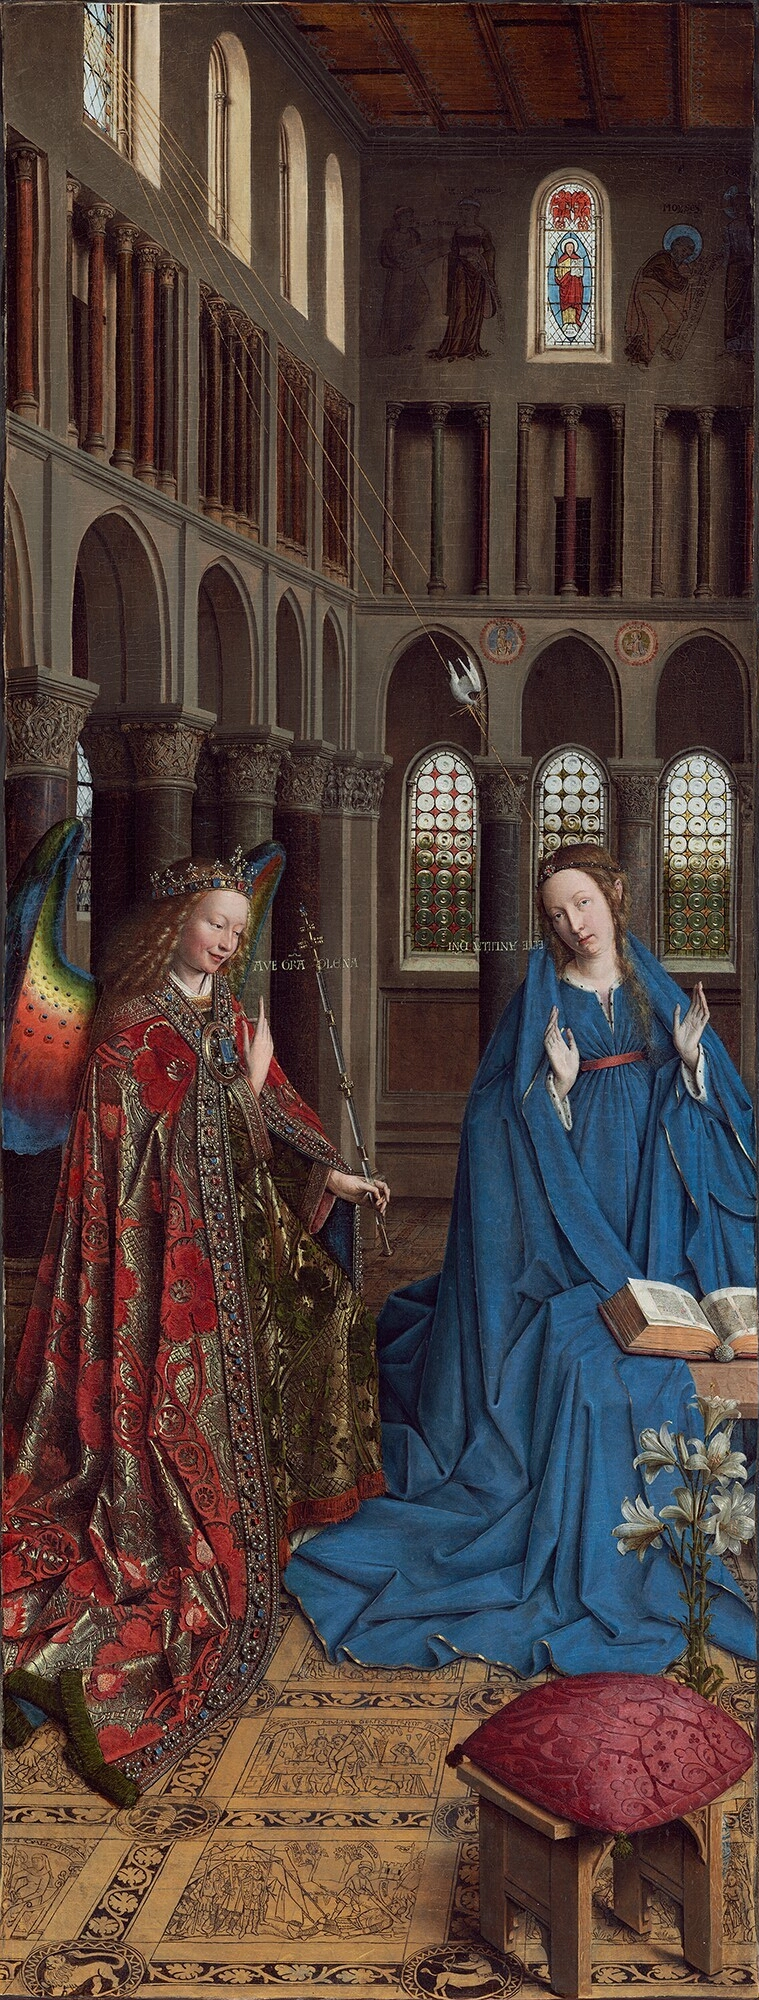 Annunciation_-_Jan_van_Eyck_-_1434_-_NG_Wash_DC